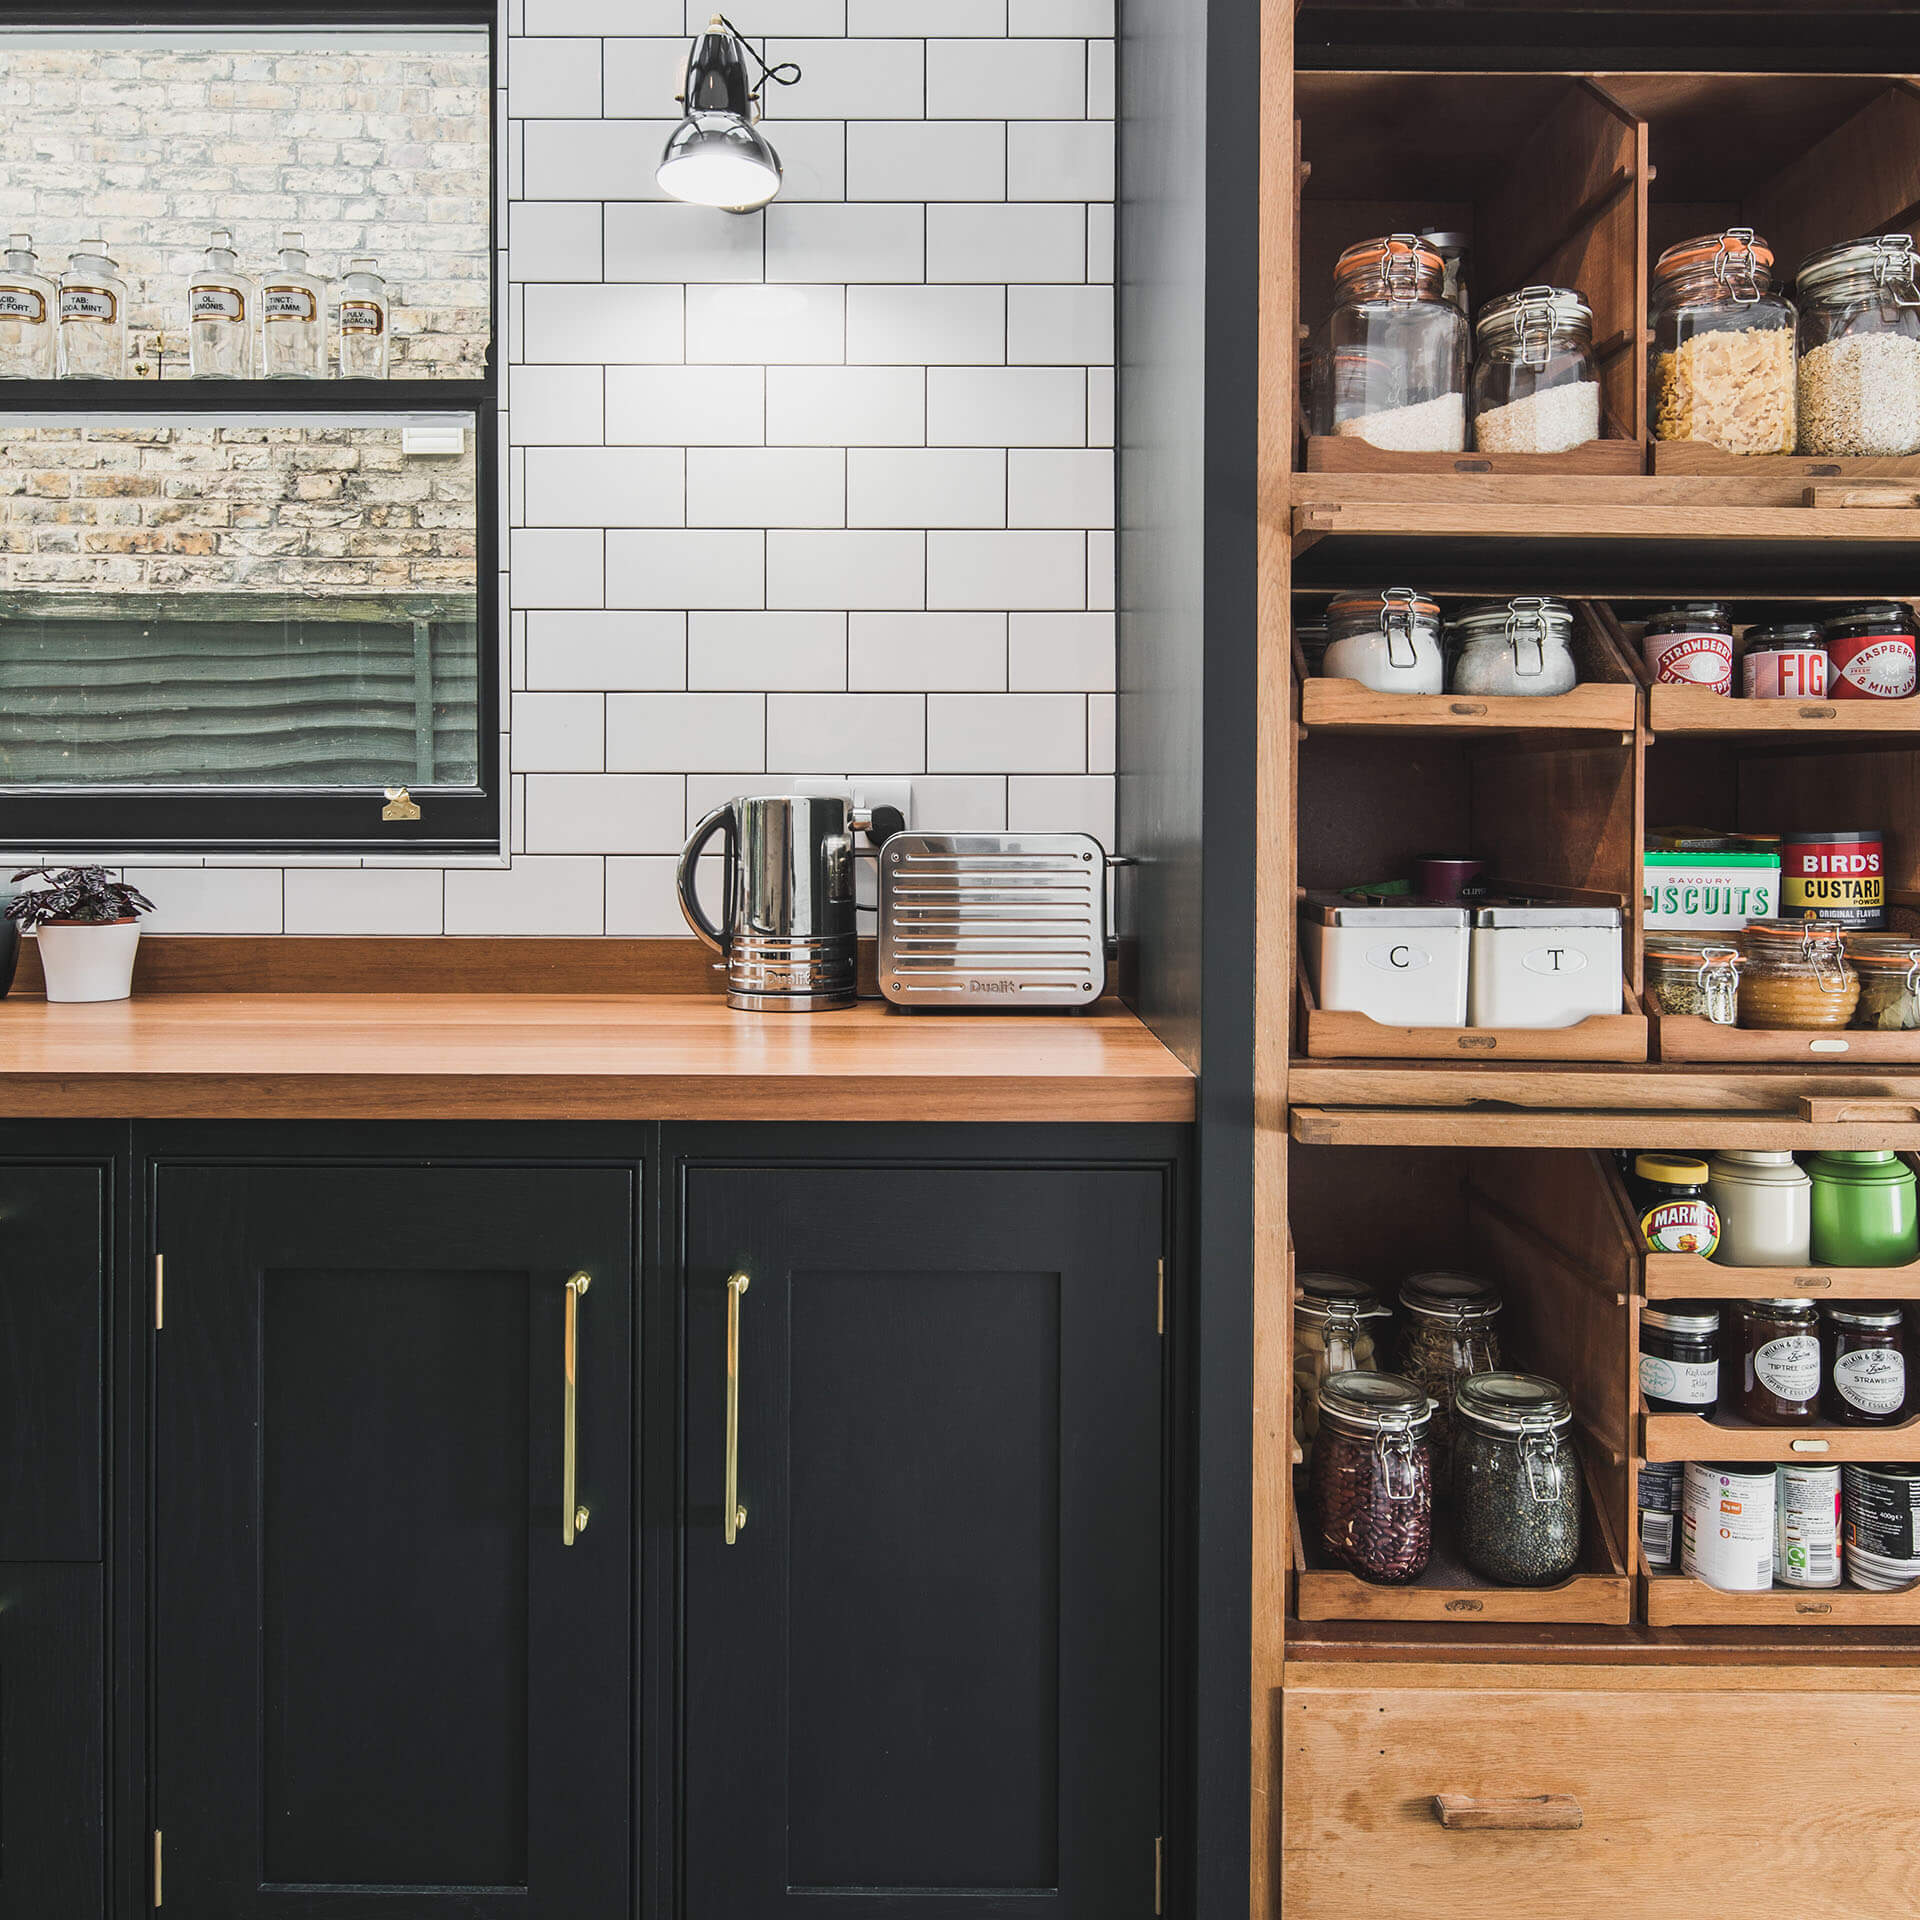 8 Kitchen Design Trends For 2019